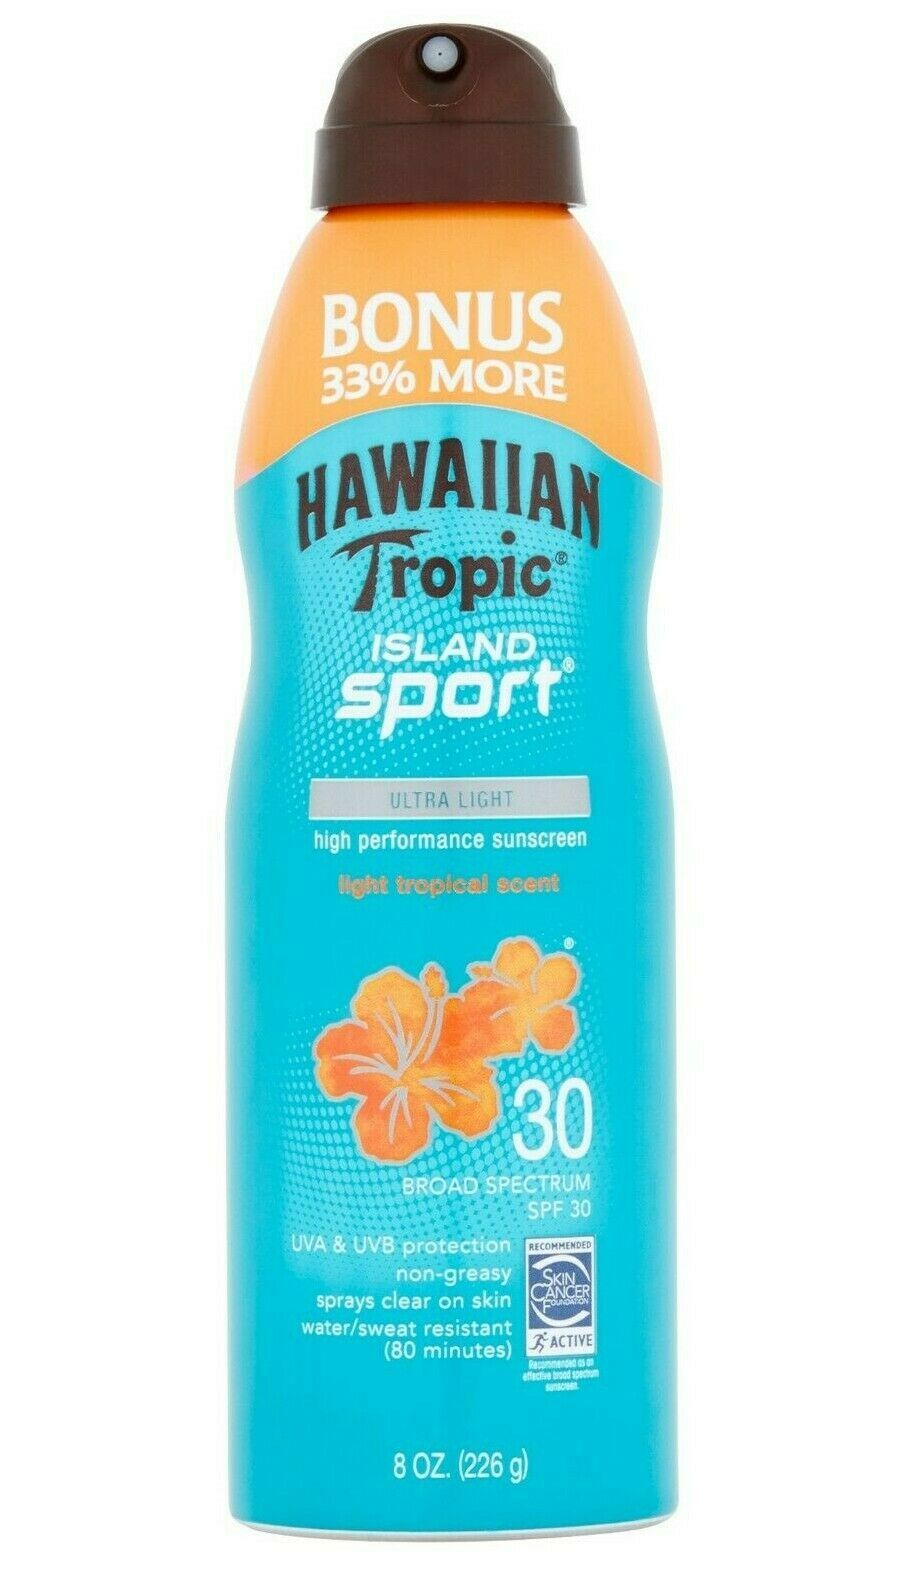 Hawaiian Tropic Island Sport High Performance tropic Sun Screen Spray SPF 30 8Oz